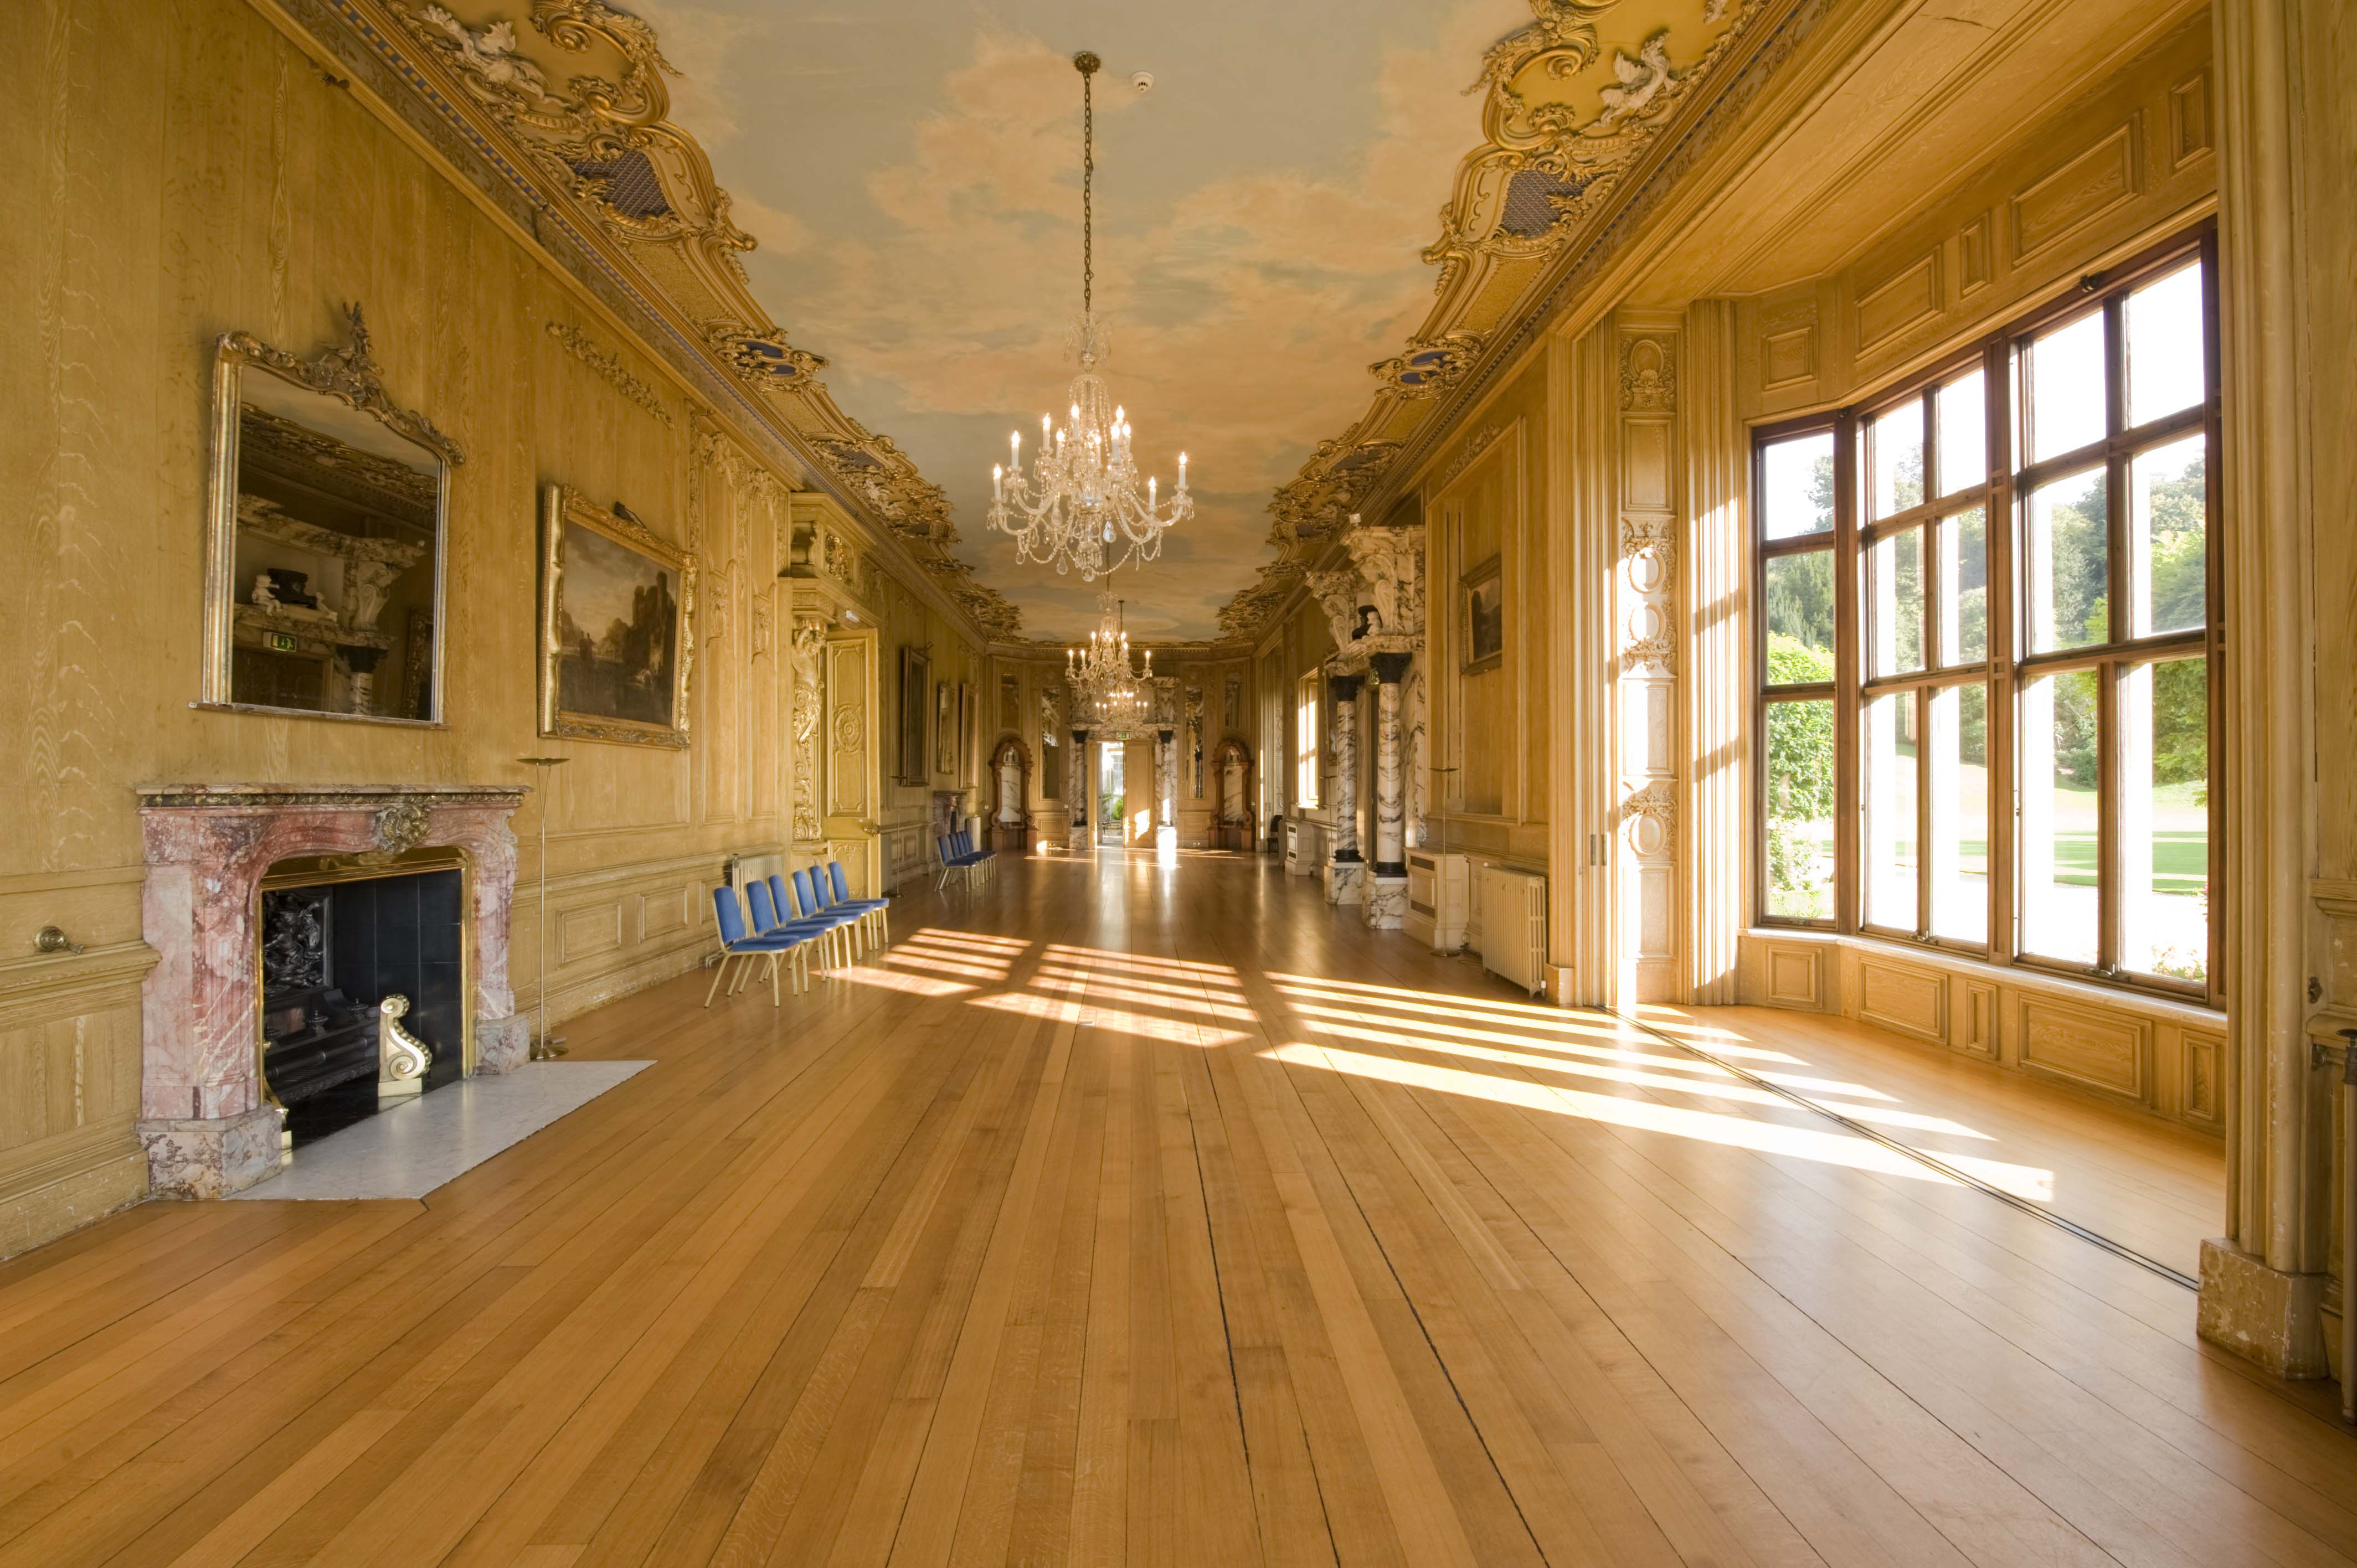 Long Gallery | Harlaxton Manor Archives